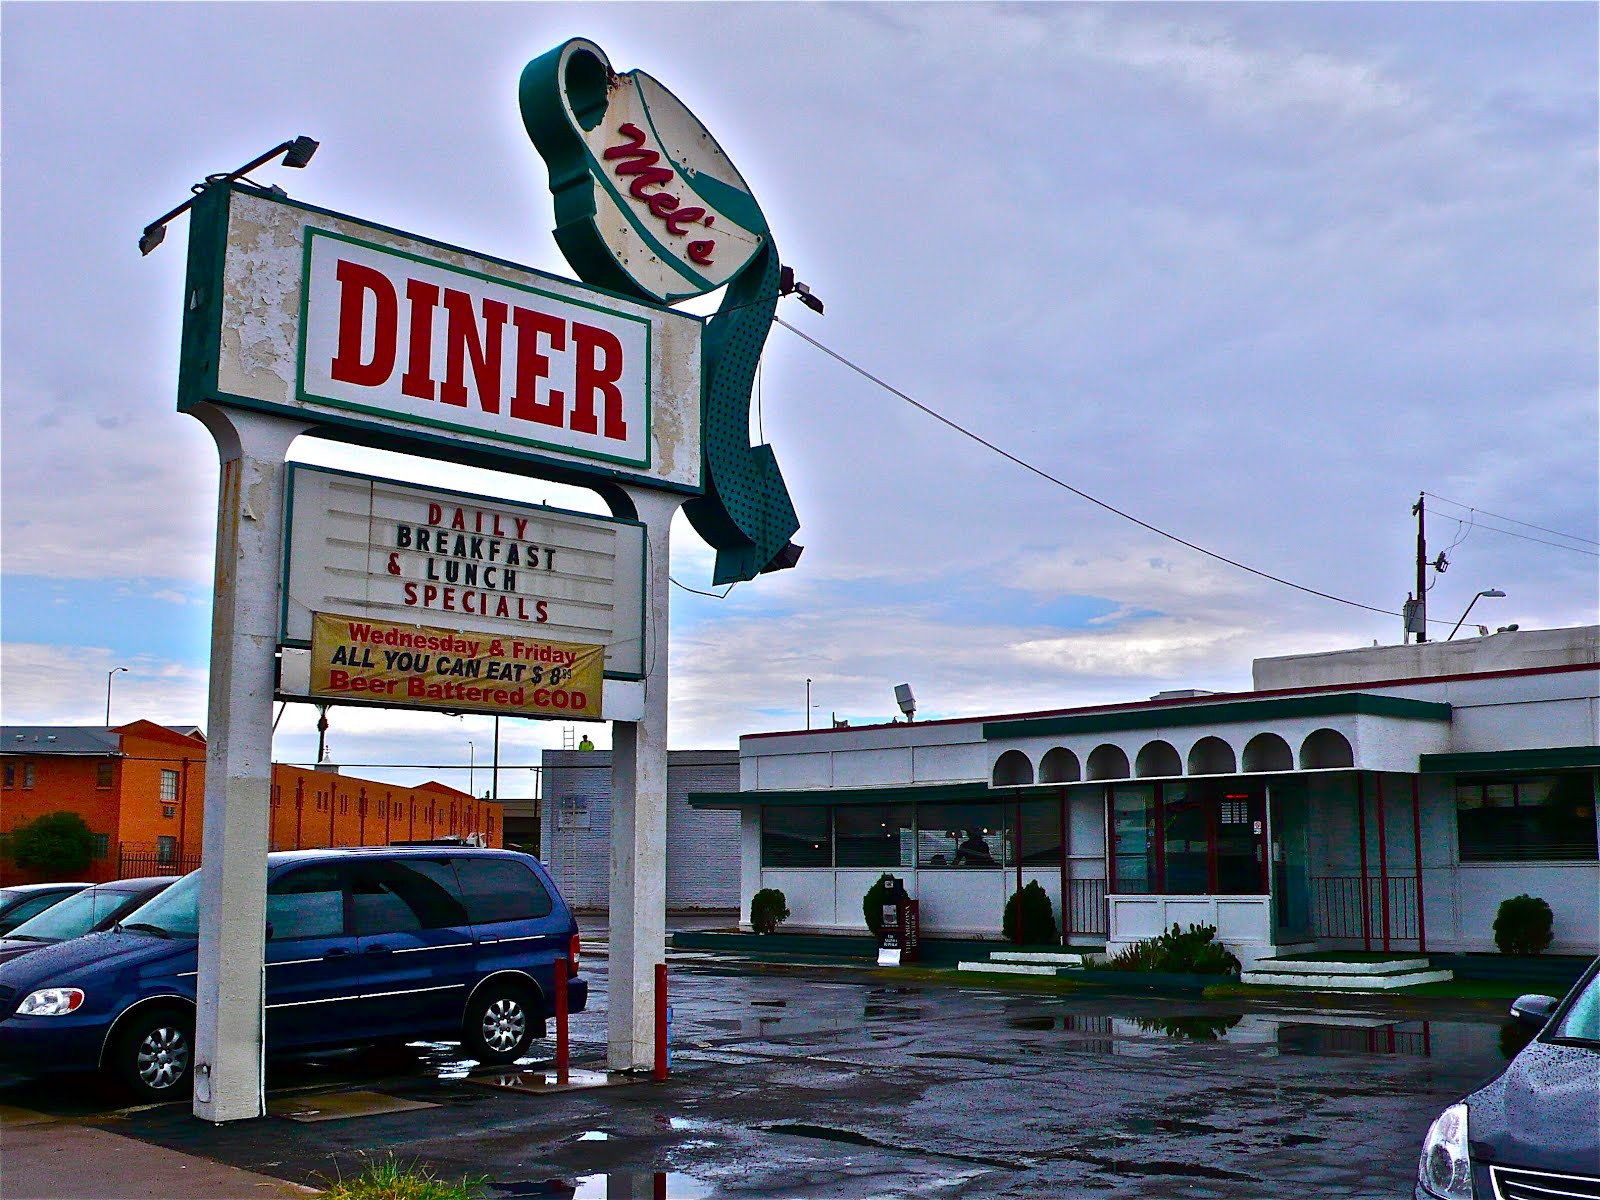 This Phoenix Diner Had Me Captivated With Its Large Coffee Cup Pouring Out On Arrow Pointing The Way To Yummy Food